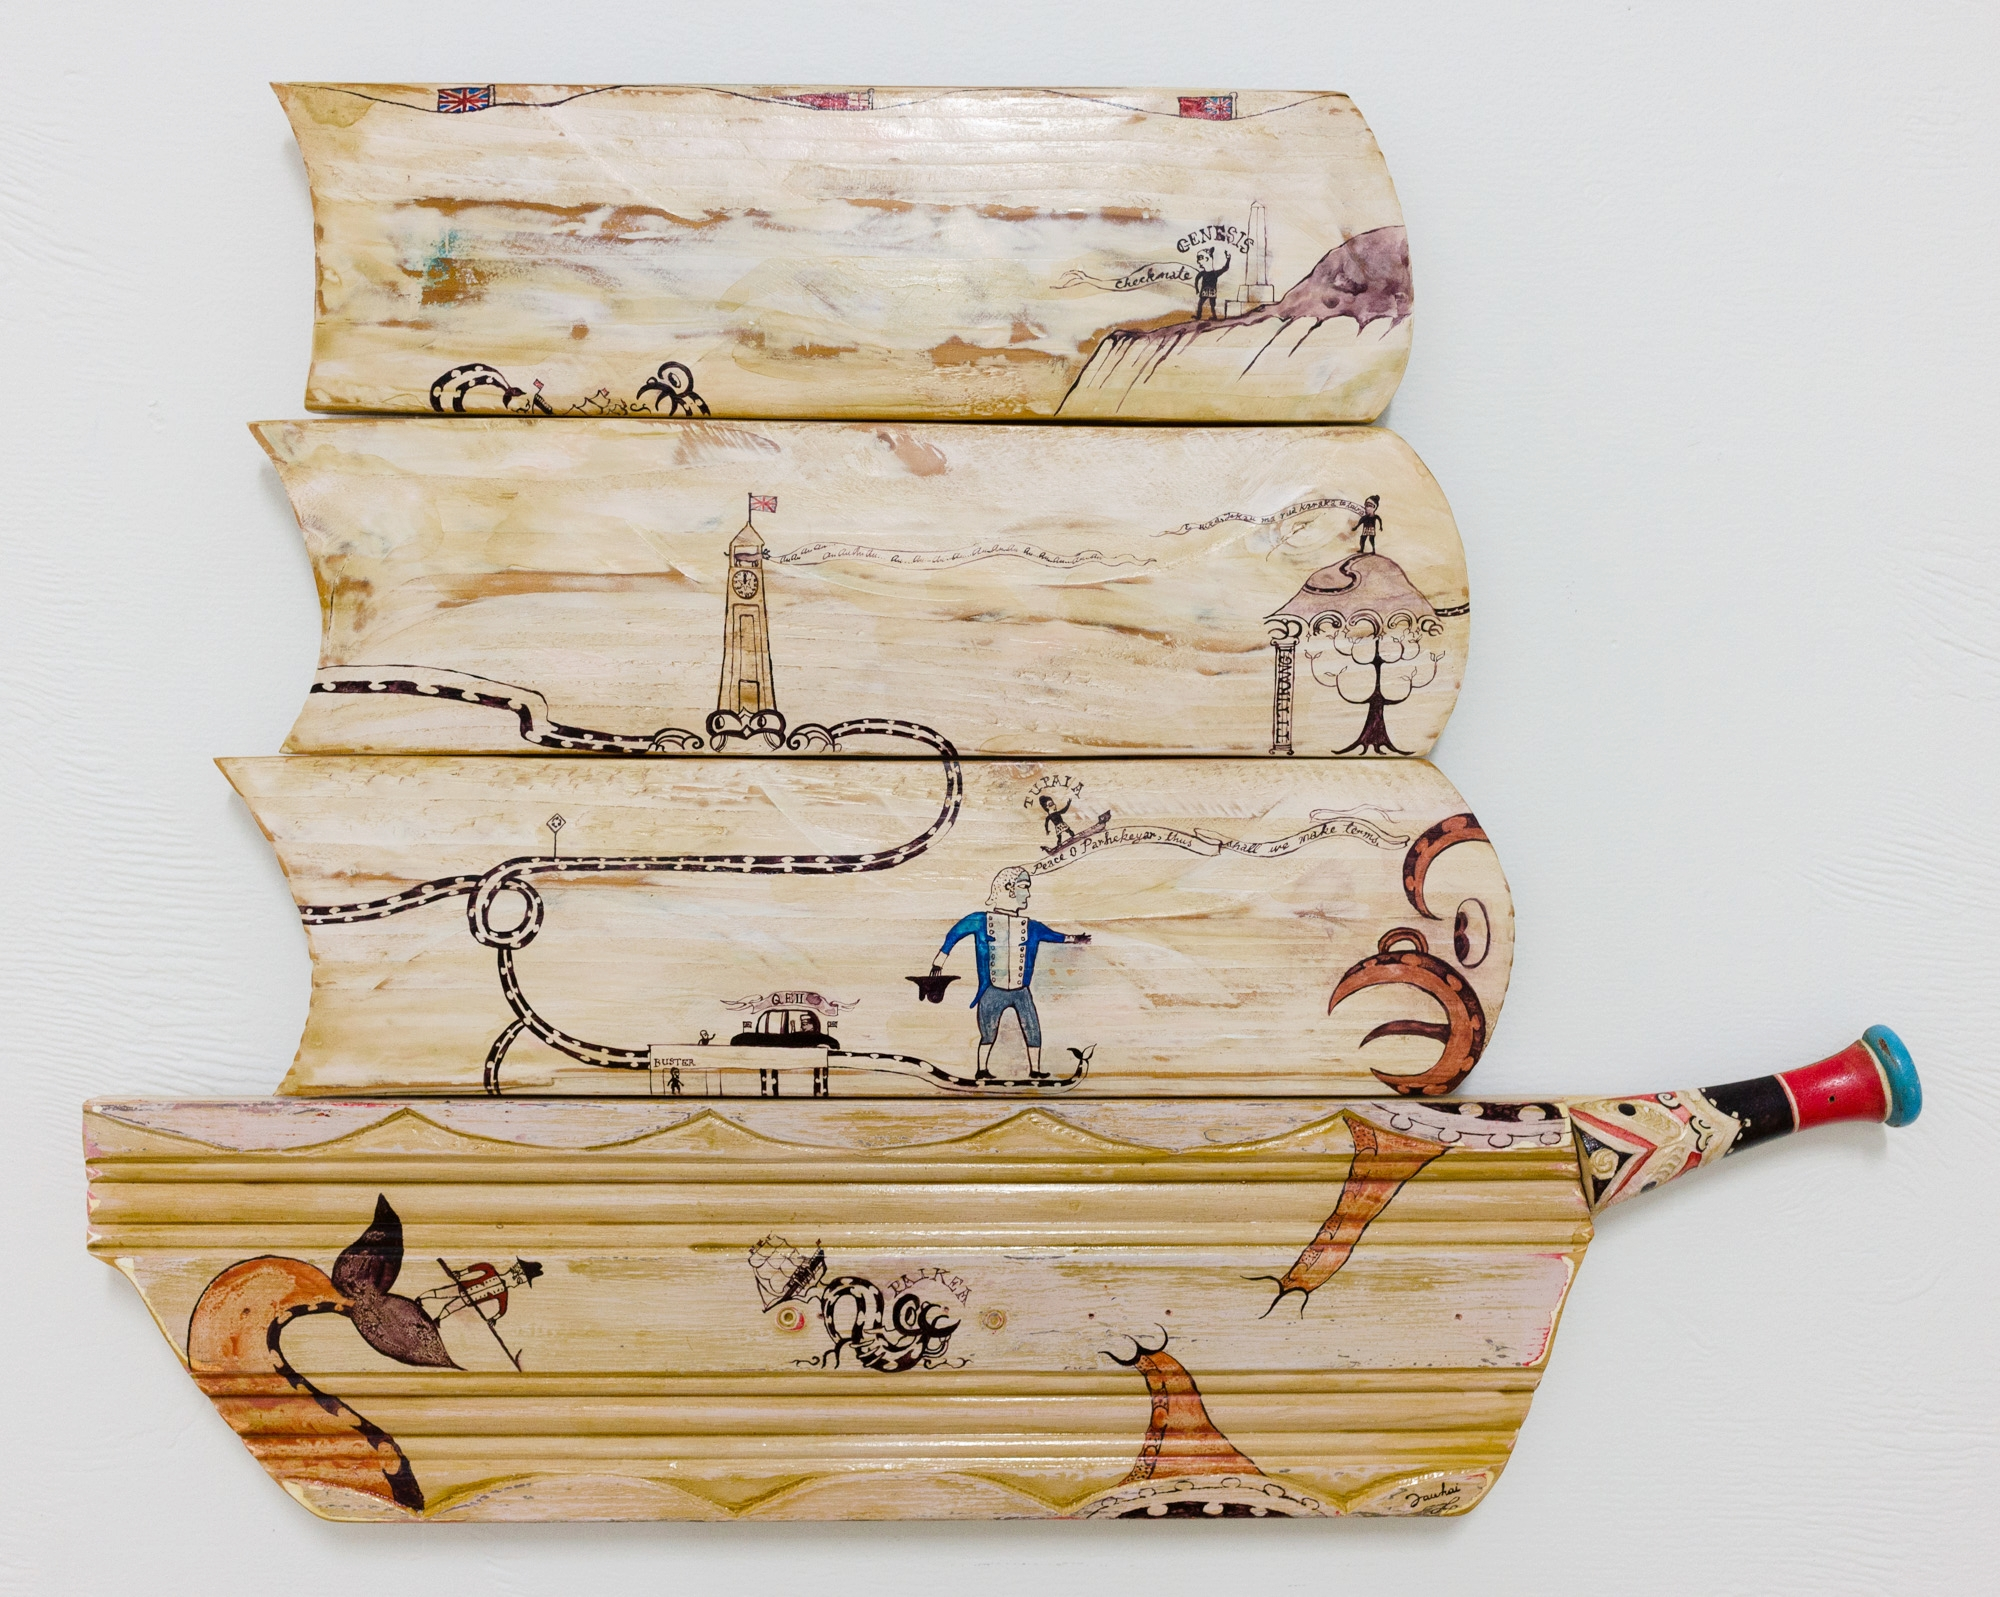 Paikea vs Cook 2016 Paint and whakairo using reclaimed wood  675 x 530 x 35mm    Representing the age-old struggle between British and Maori culture and sovereignty.